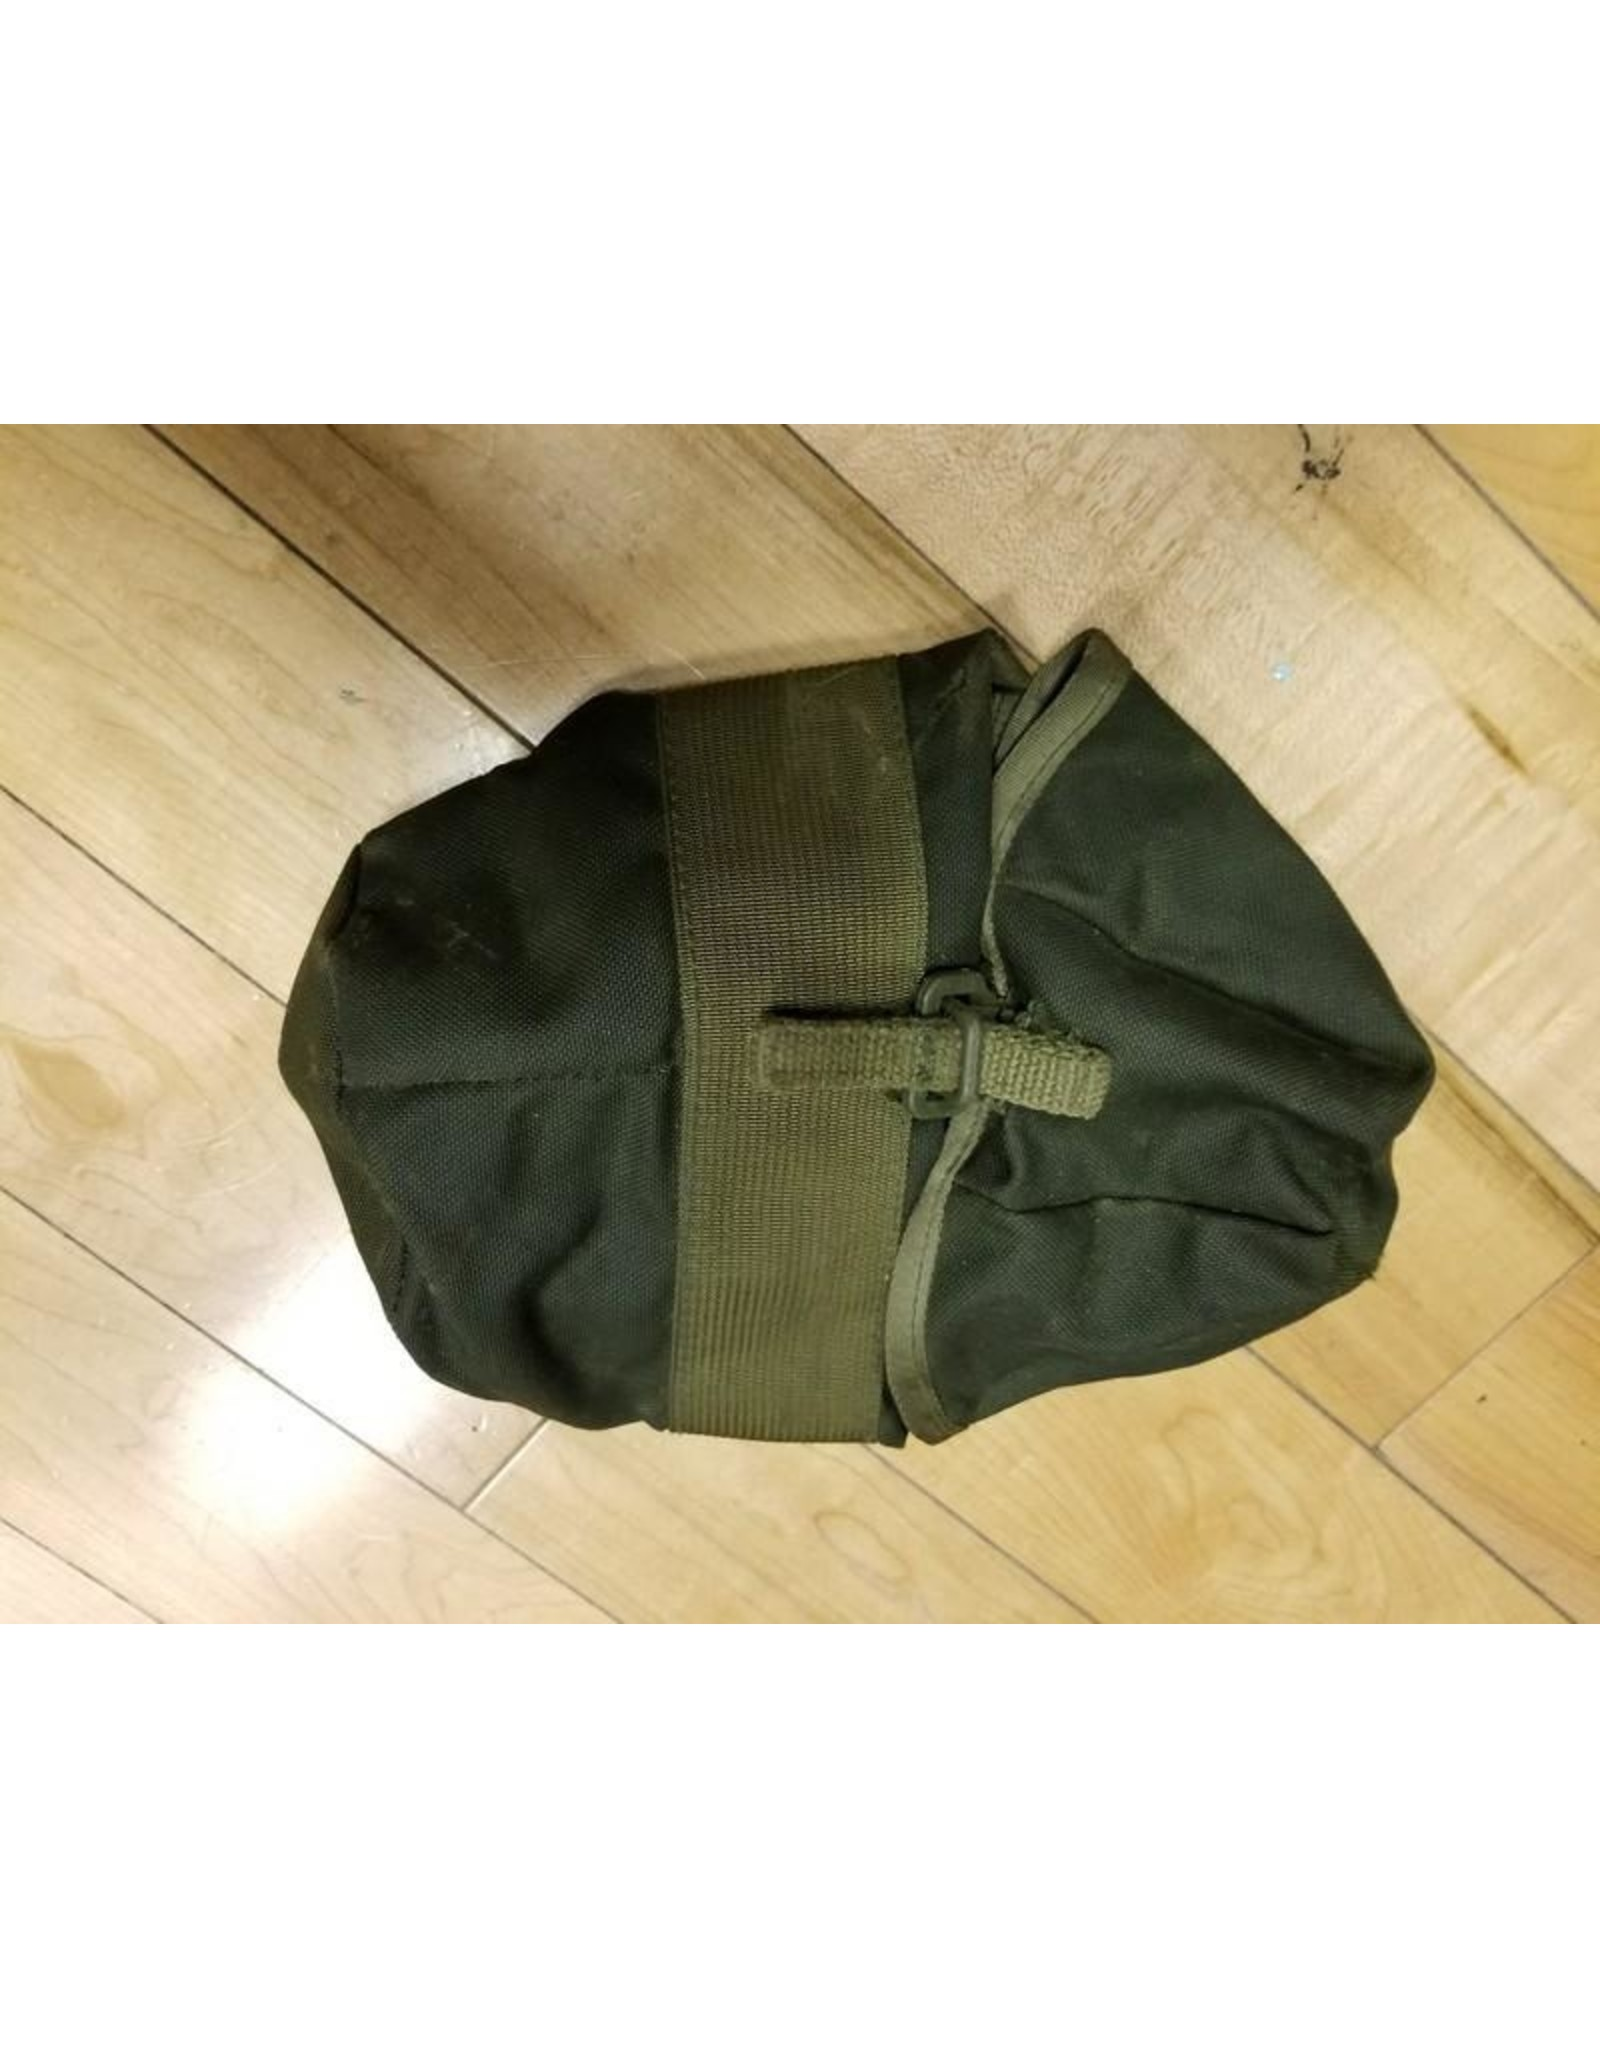 SURPLUS CANADIAN CANTEEN POUCH